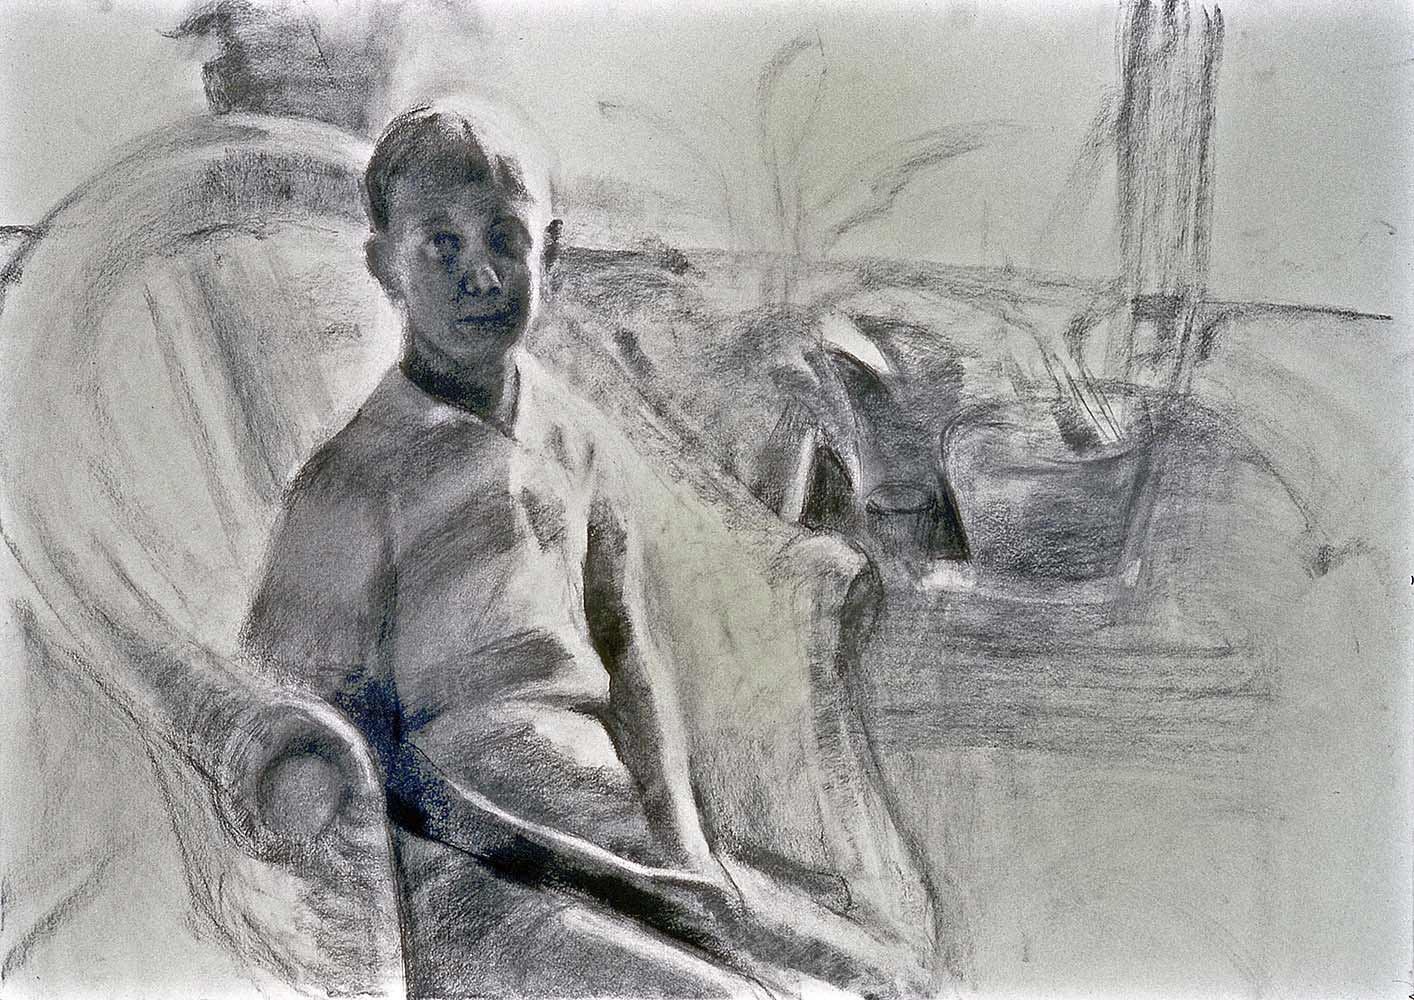 Child in Morning Light, charcoal and conte